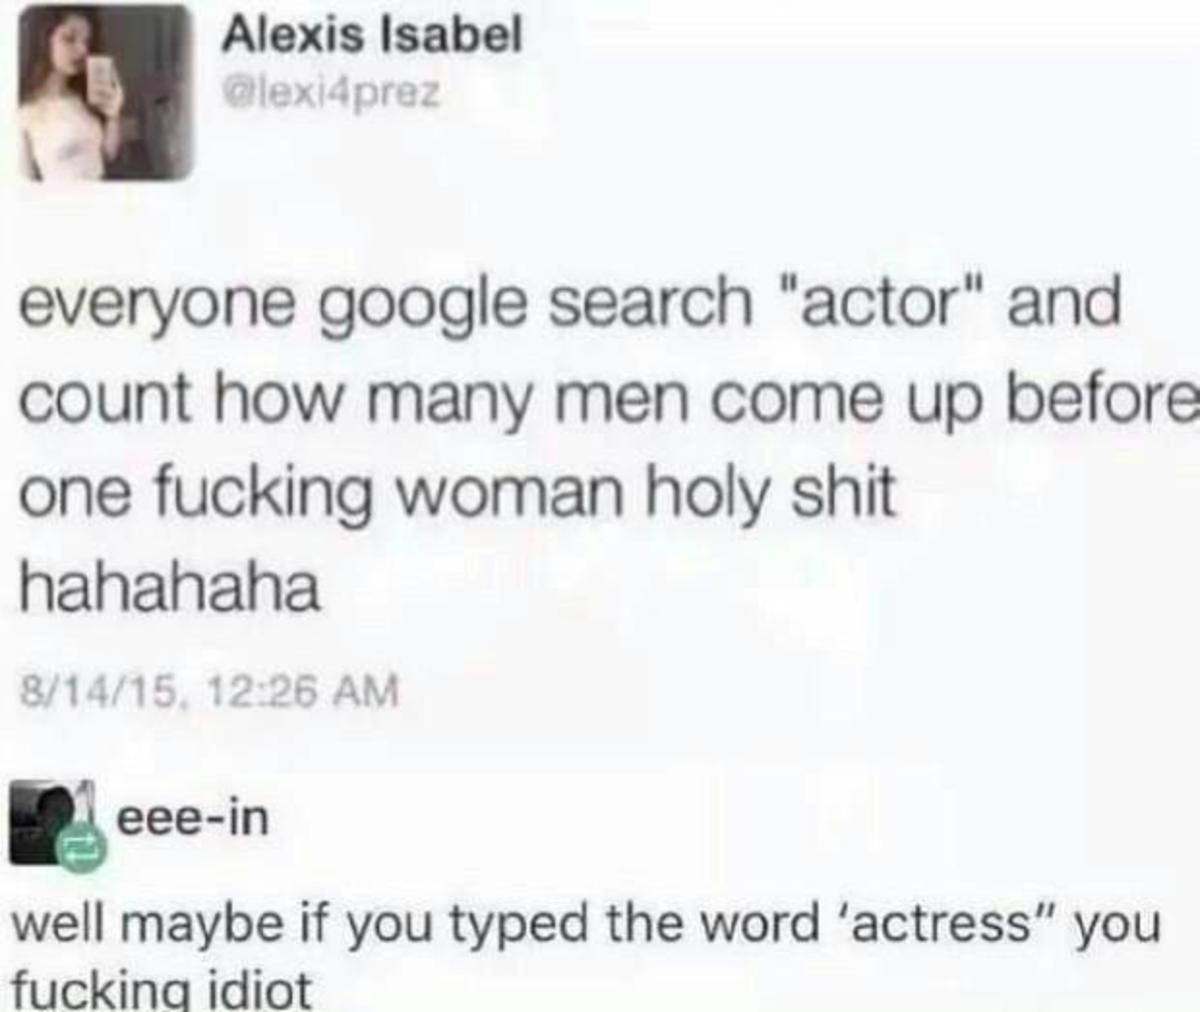 "feminism today. . Alexis Isabel everyone google search ""actor"" and count how (reen Carole up before one fucking holy shit 3. r' 1225 Ahh well maybe if you typed"